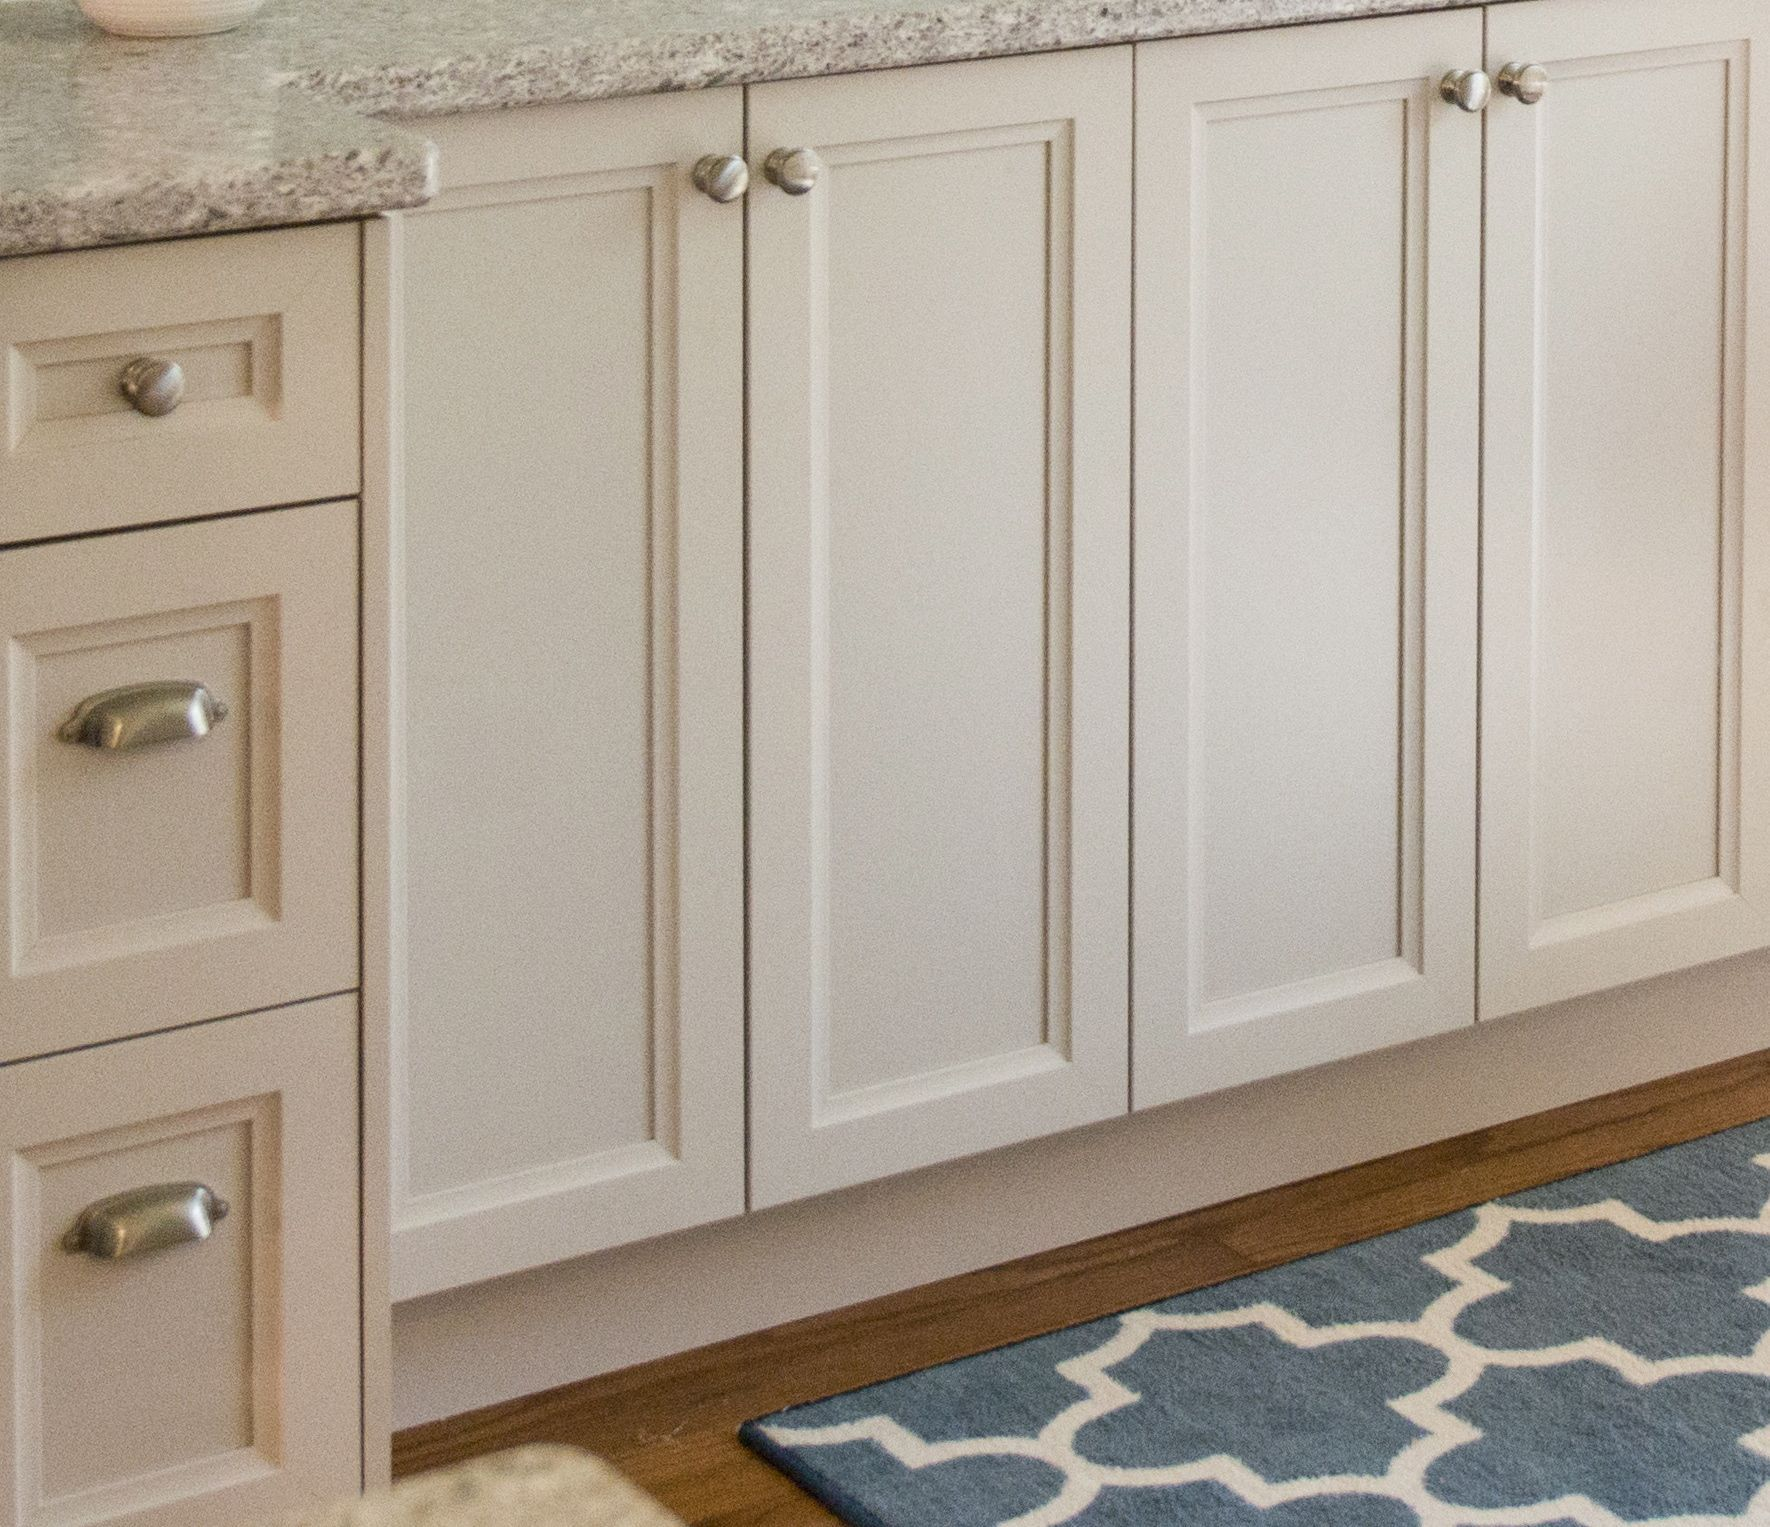 in silhouette collection wall products urban set cutler double bath hung vanity kitchen and bowl